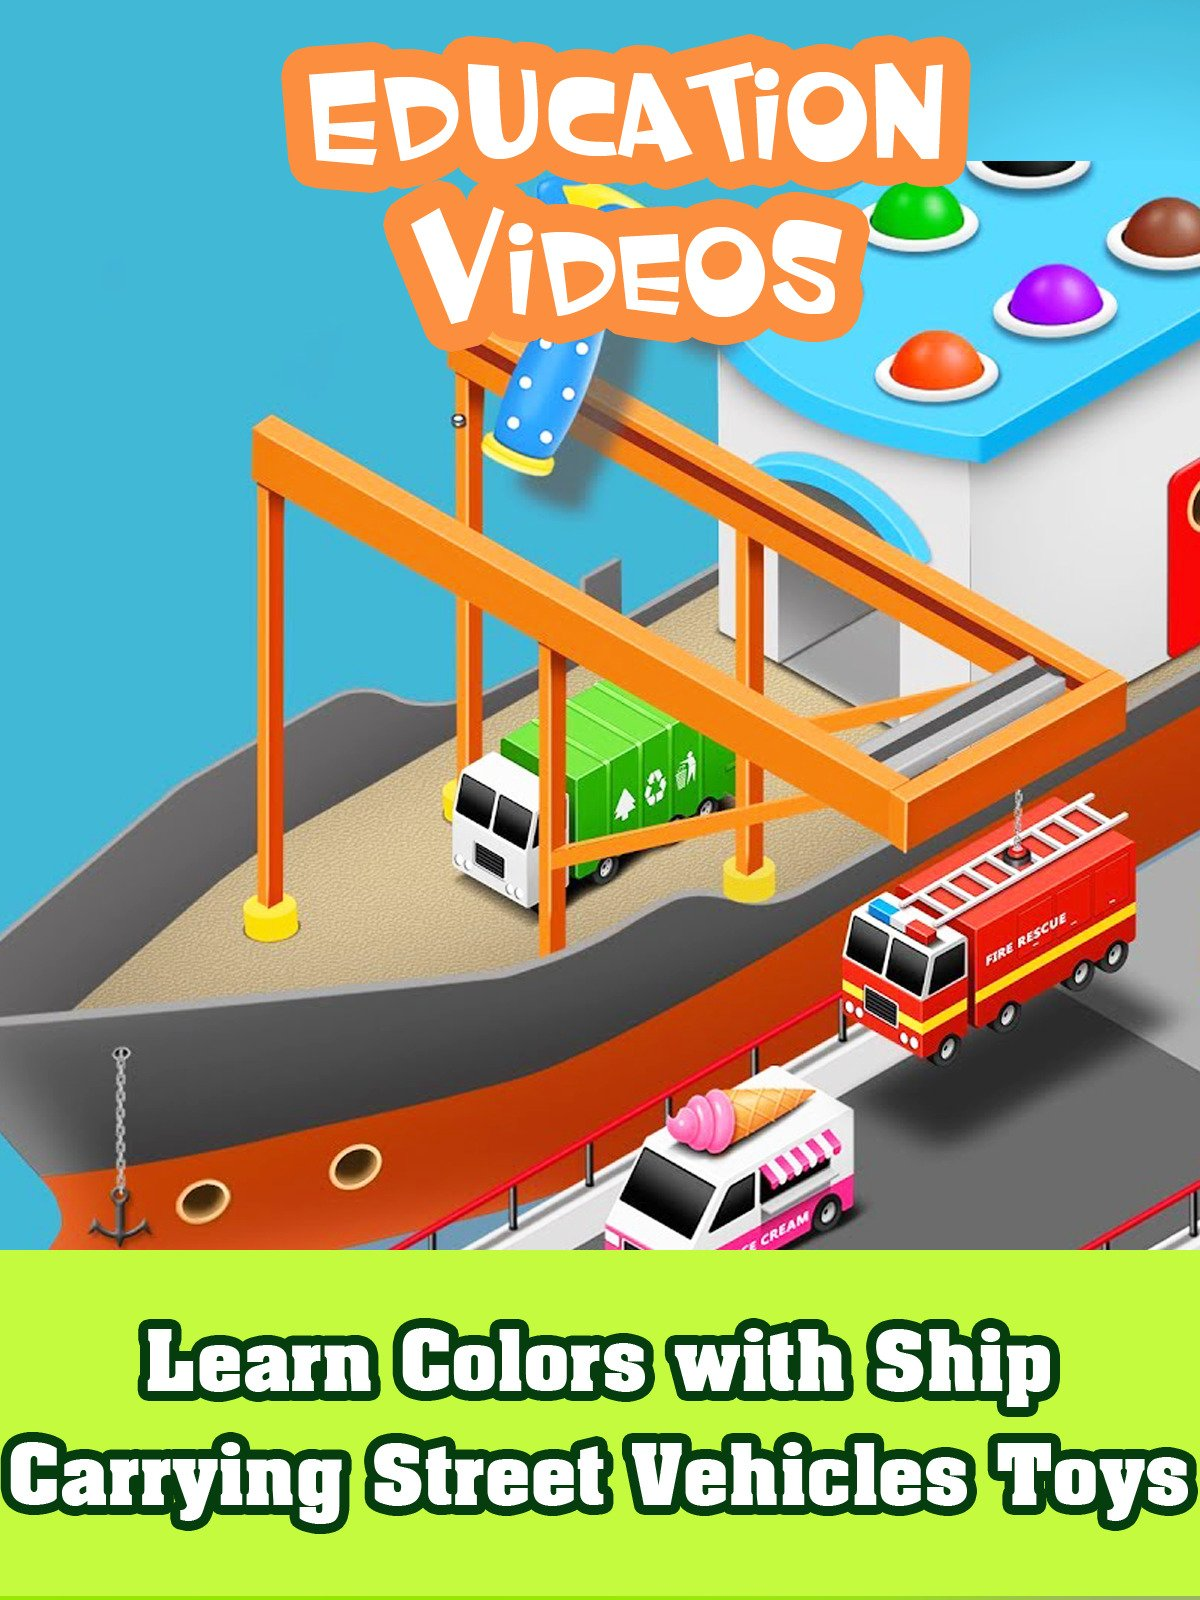 Learn Colors with Ship Carrying Street Vehicles Toys